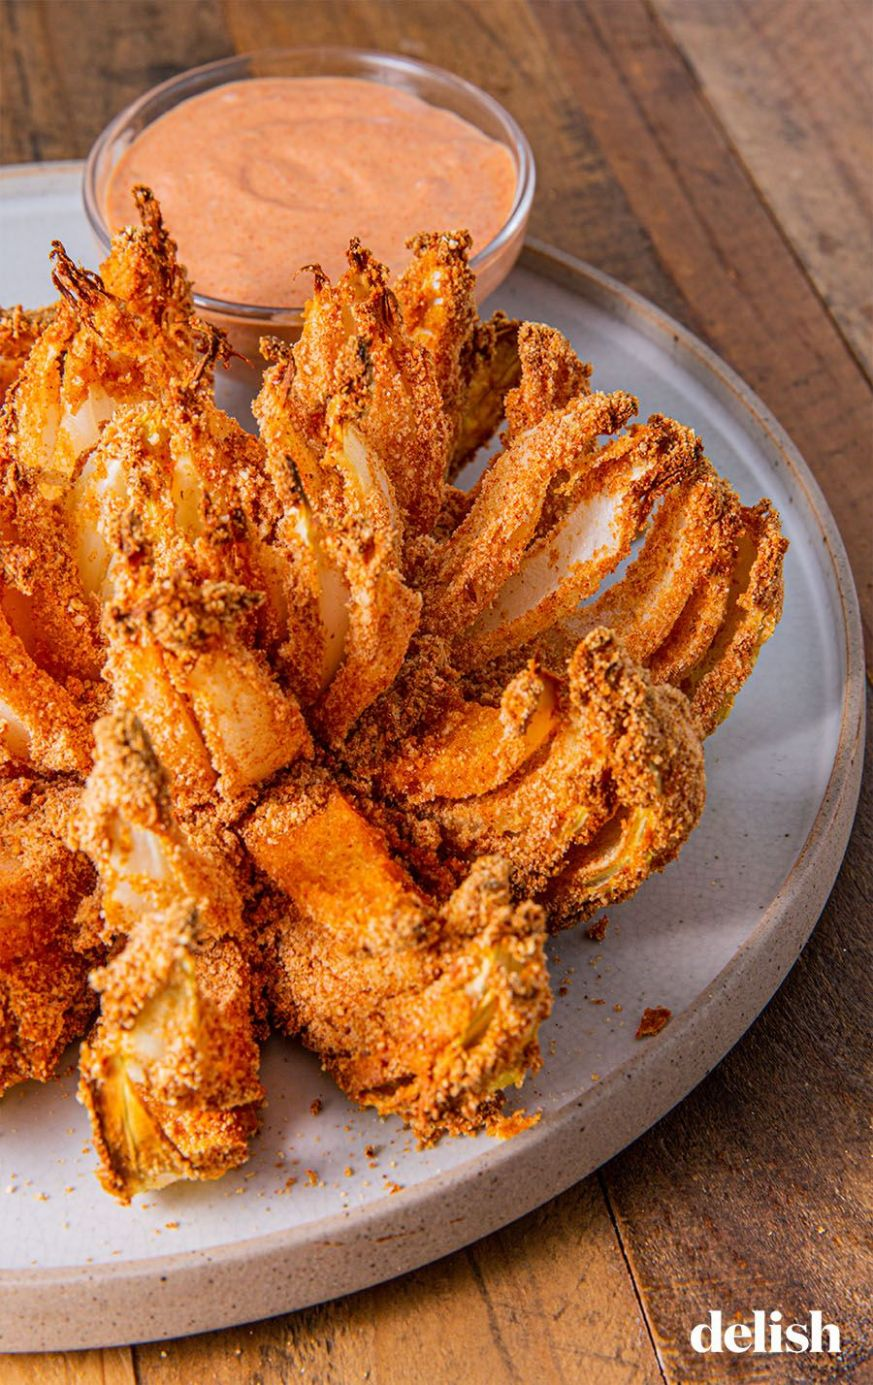 9+ Best Air Fryer Recipes - Healthy Meals You Can Cook in Air Fryers - Recipes Dinner Air Fryer